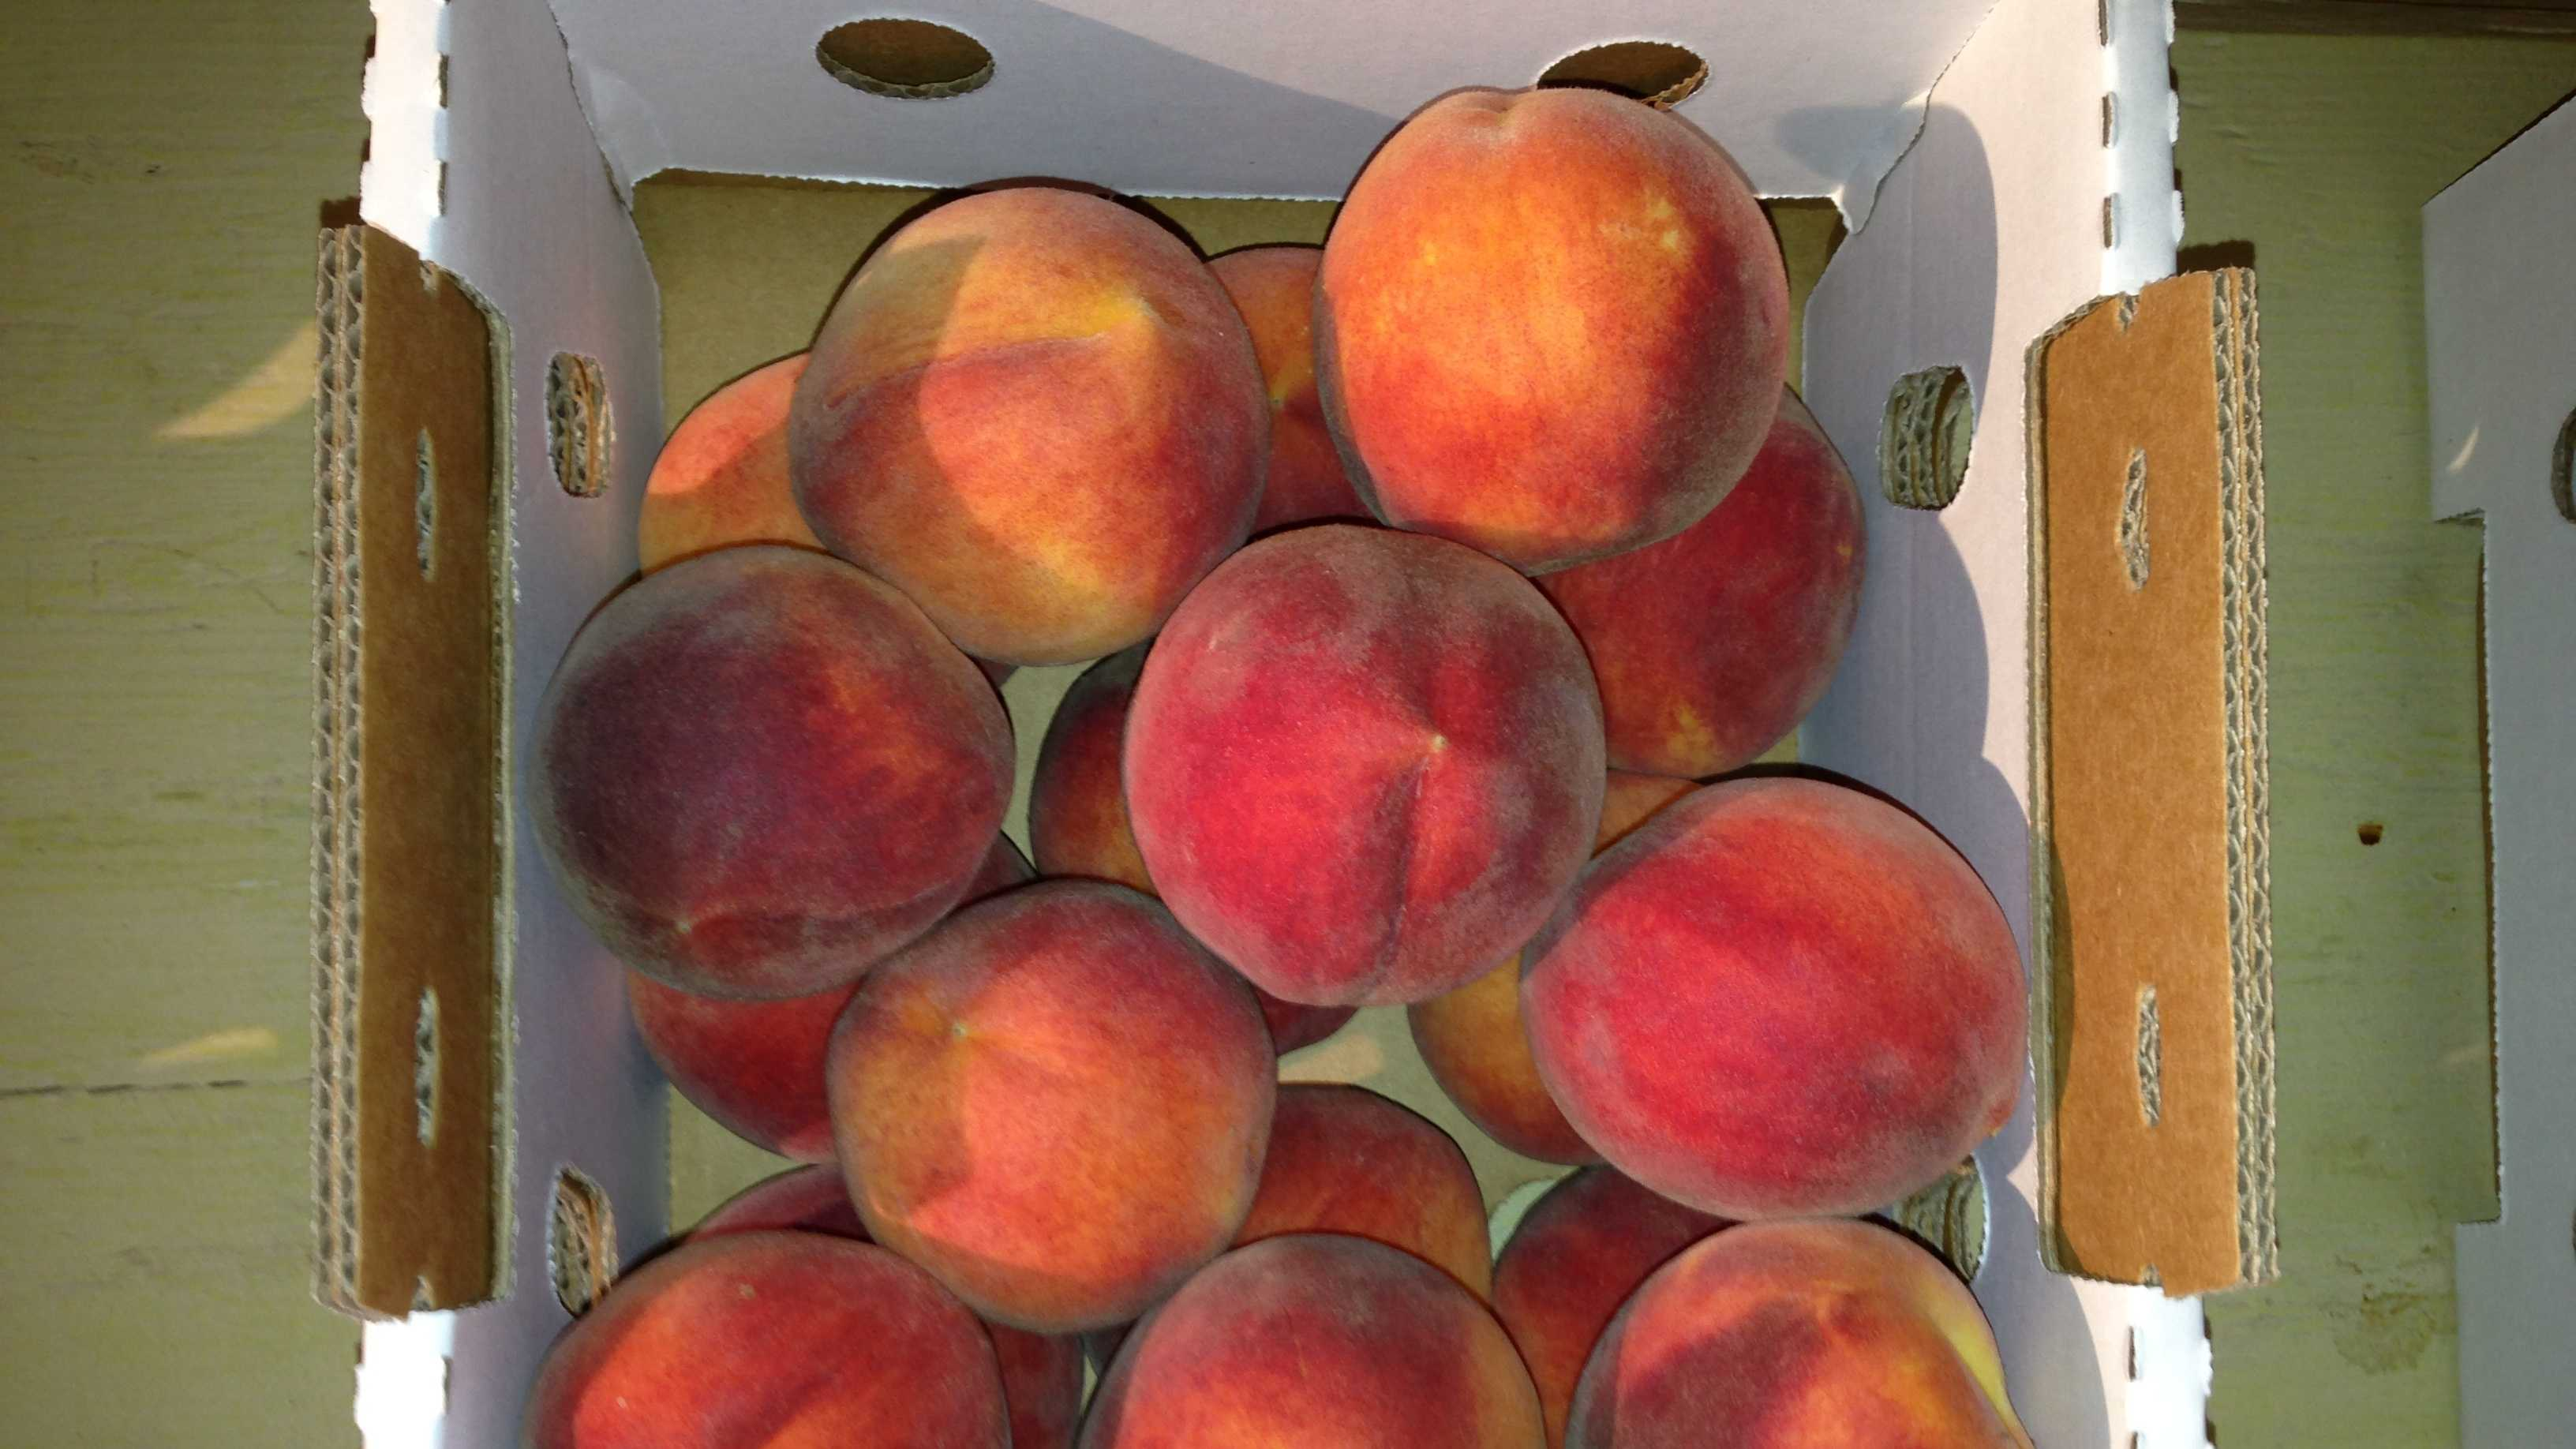 The festival is designed for peach lovers. Farmers will showcase their succulent fruit and produce at the annual gathering, which is the brainchild of the Sodaro family. The family grows acres upon acres of peaches at the Sodaro Orchard.